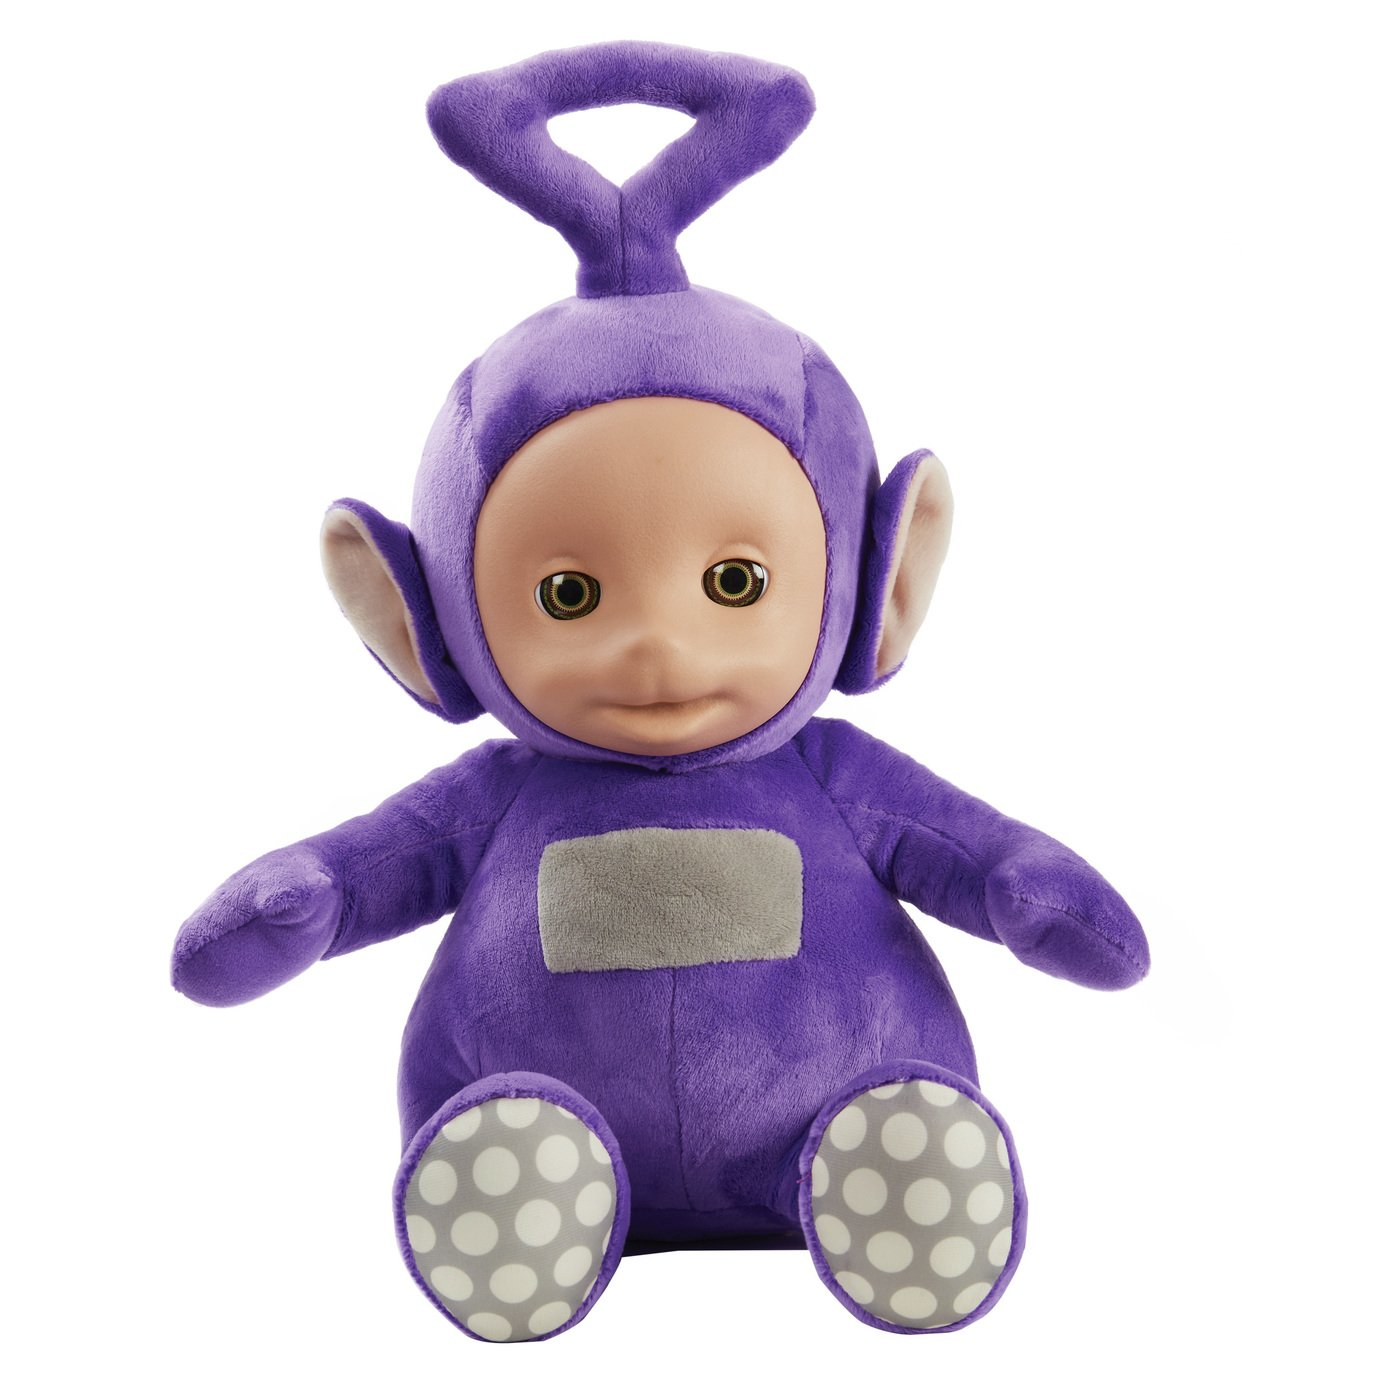 Teletubbies Jumbo Tinky Winky review